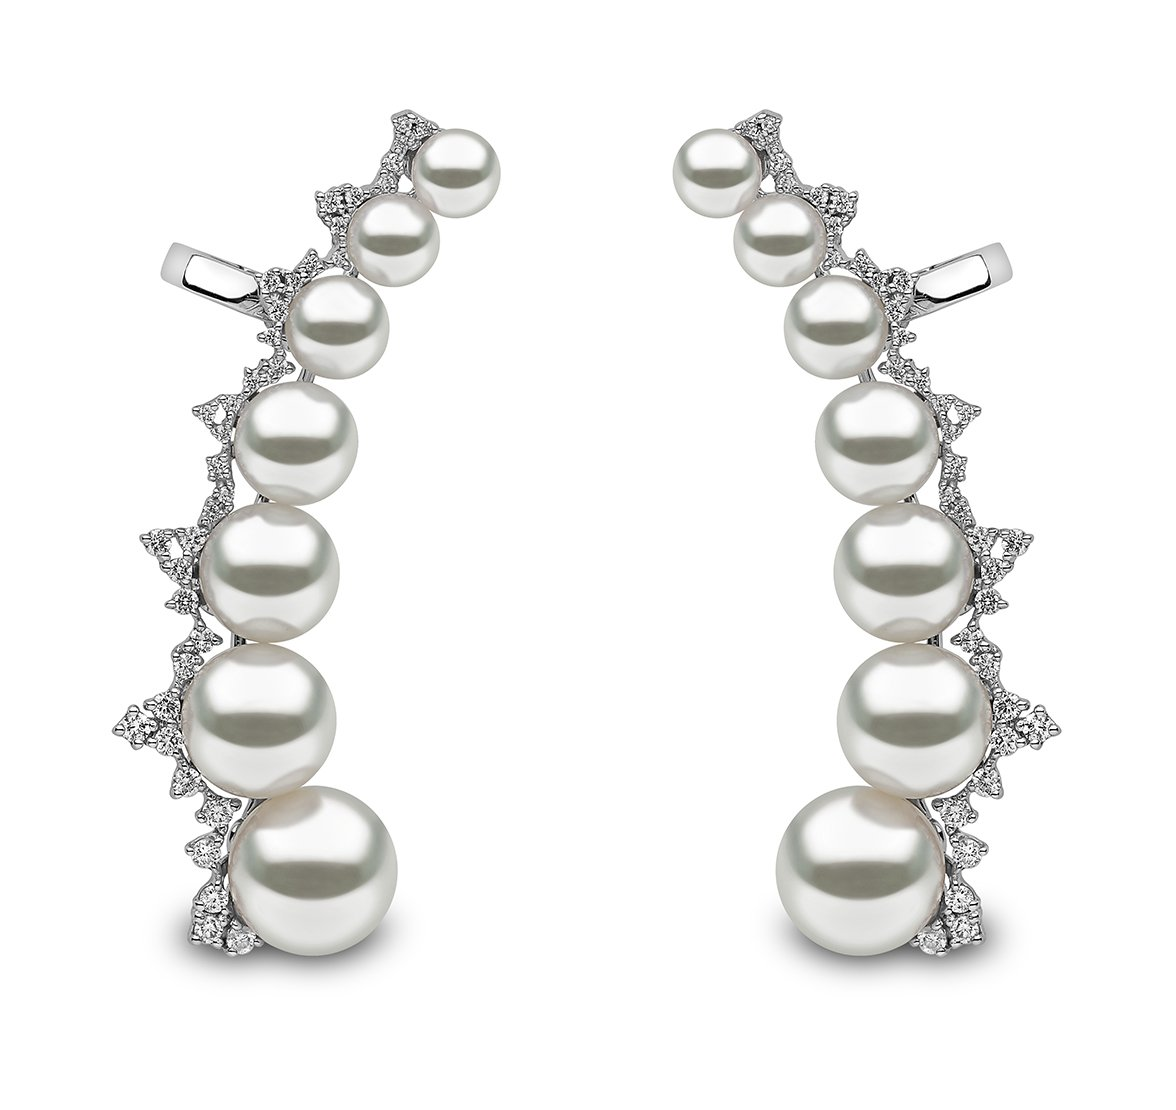 Yoko London Novus Pearl Ear Cuffs